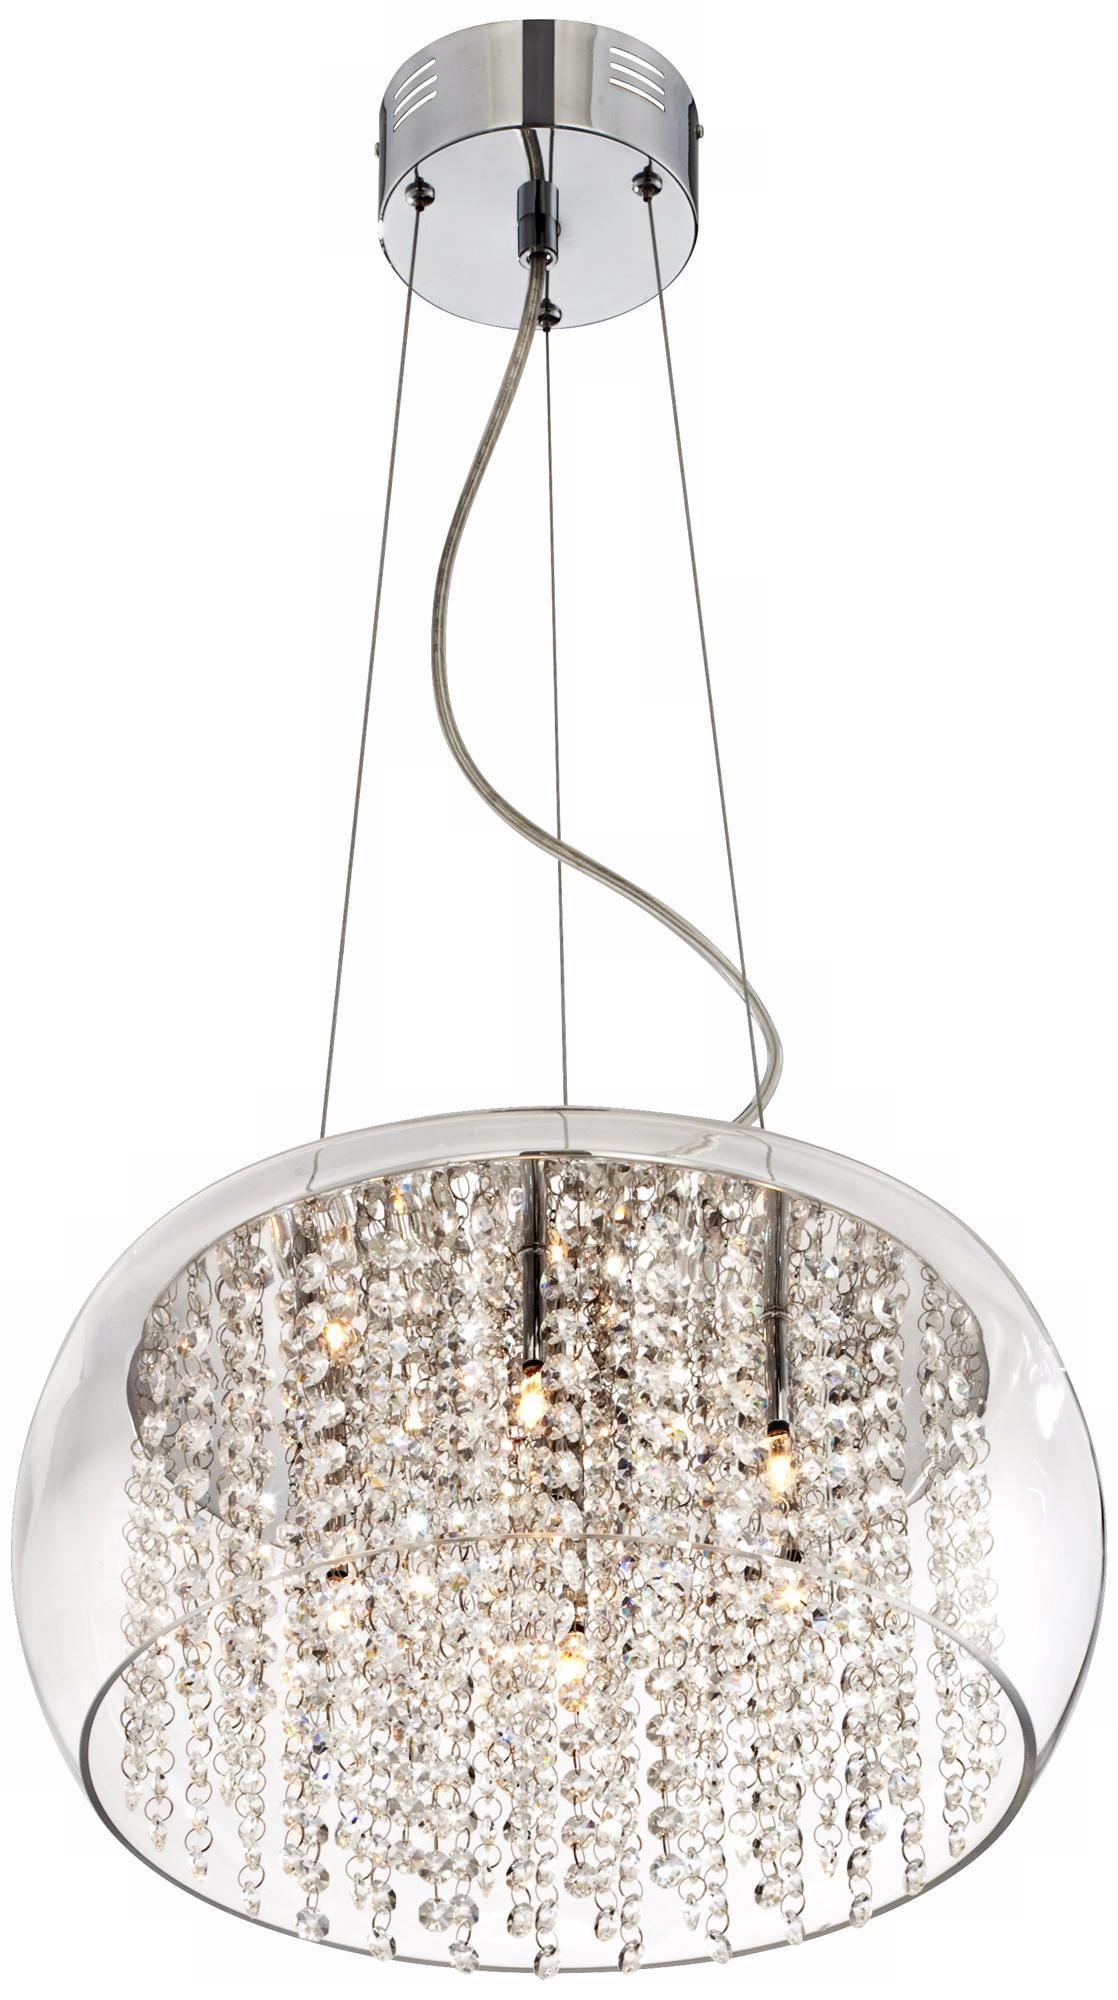 Possini Euro Crystal Rainfall 17 Wide Glass Drum Chandelier U0694 Lamps Plus Contemporary Crystal Chandelier Chandelier Drum Shade